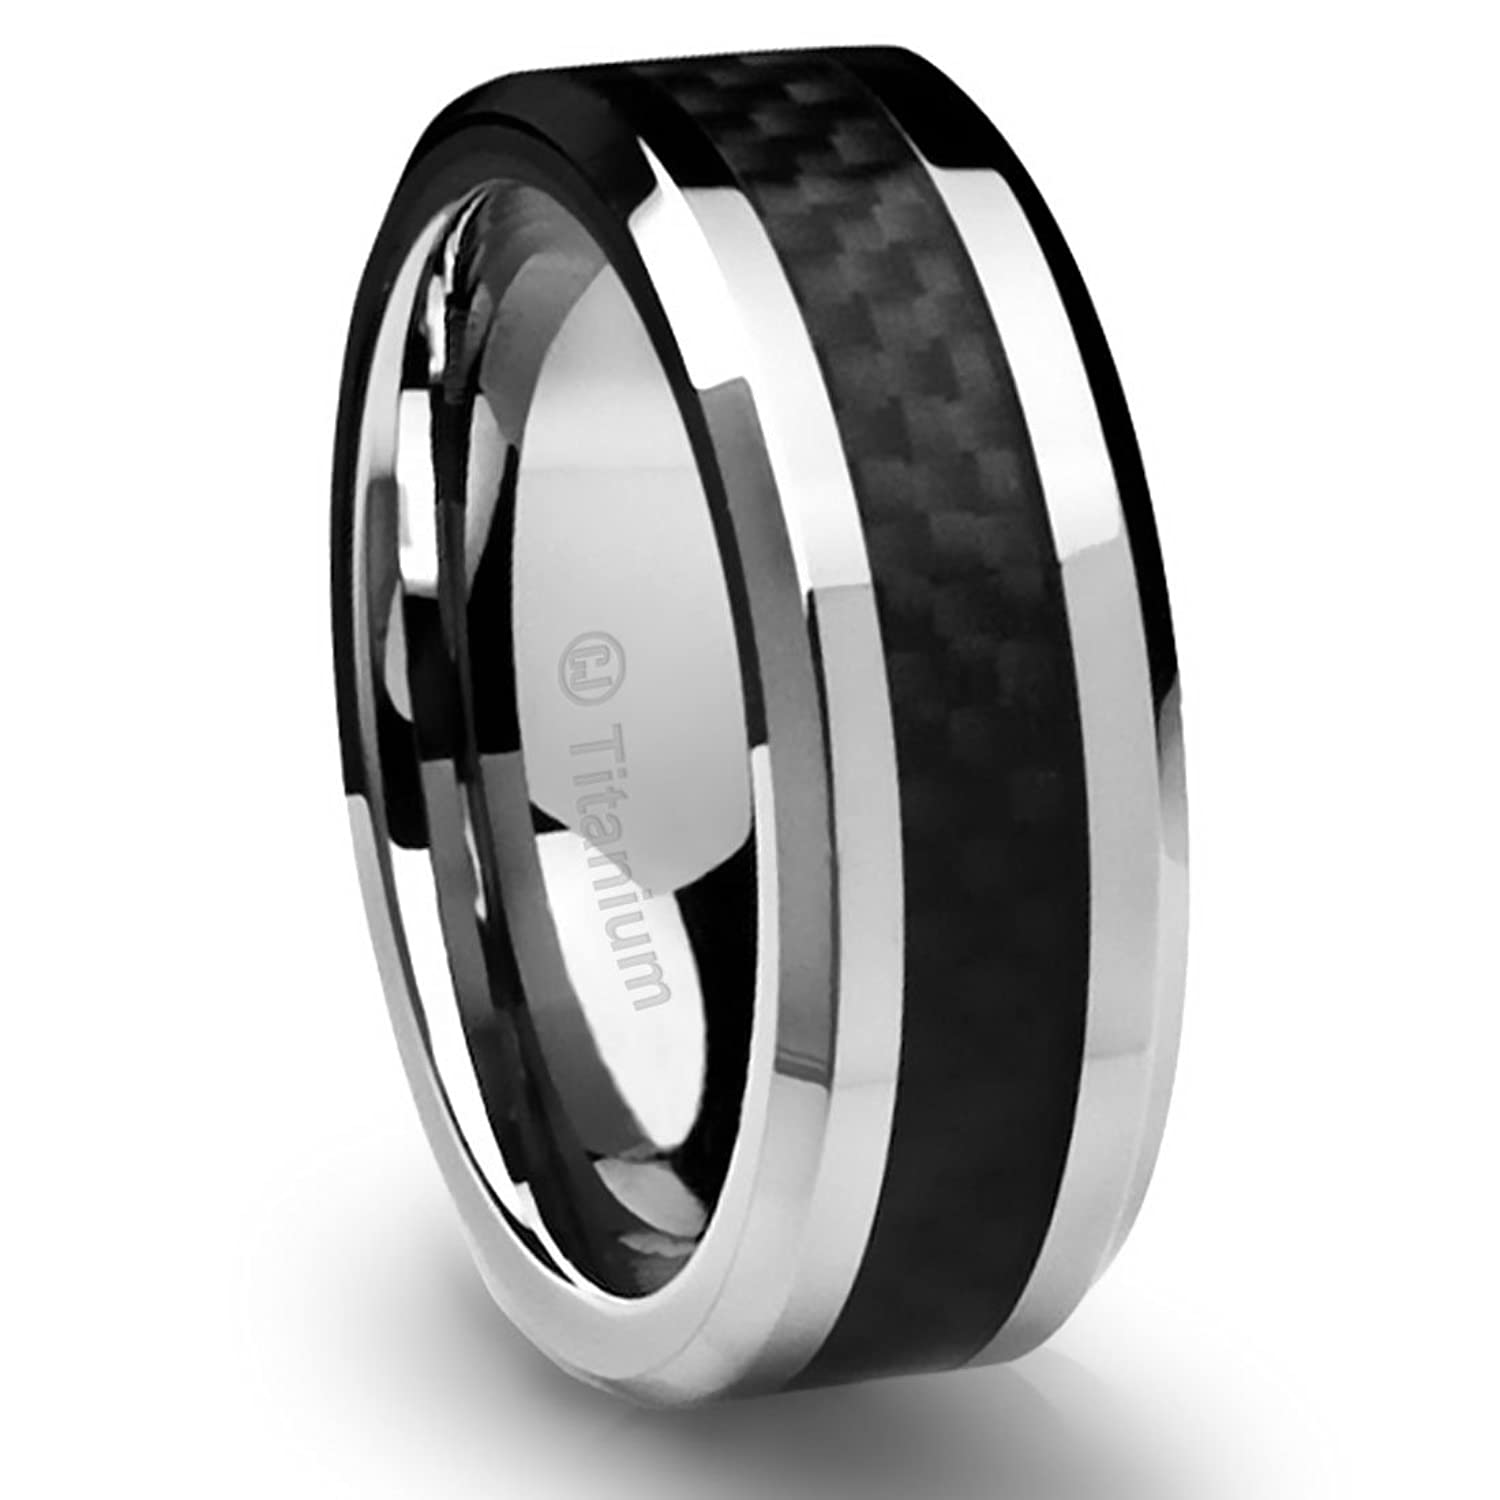 8mm men s titanium ring wedding band black carbon fiber inlay and